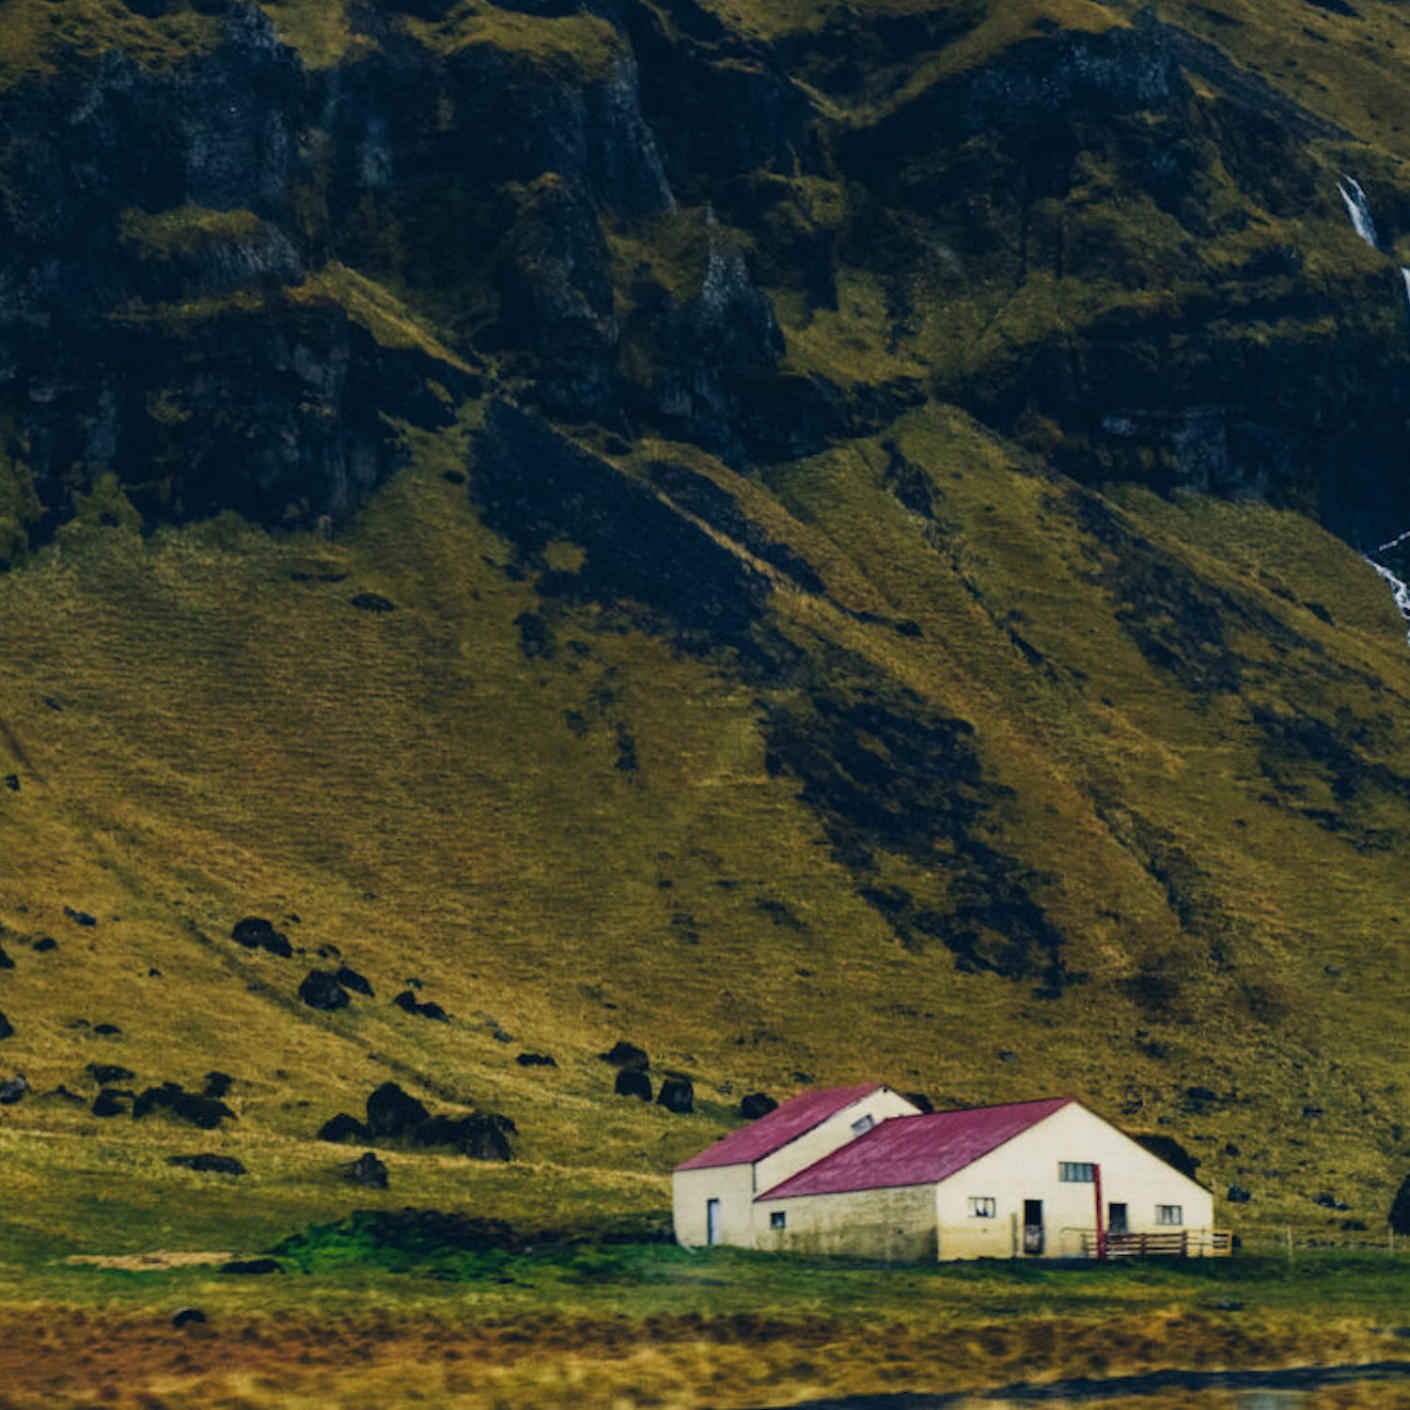 A house at the bottom of a green mountain range in Iceland.